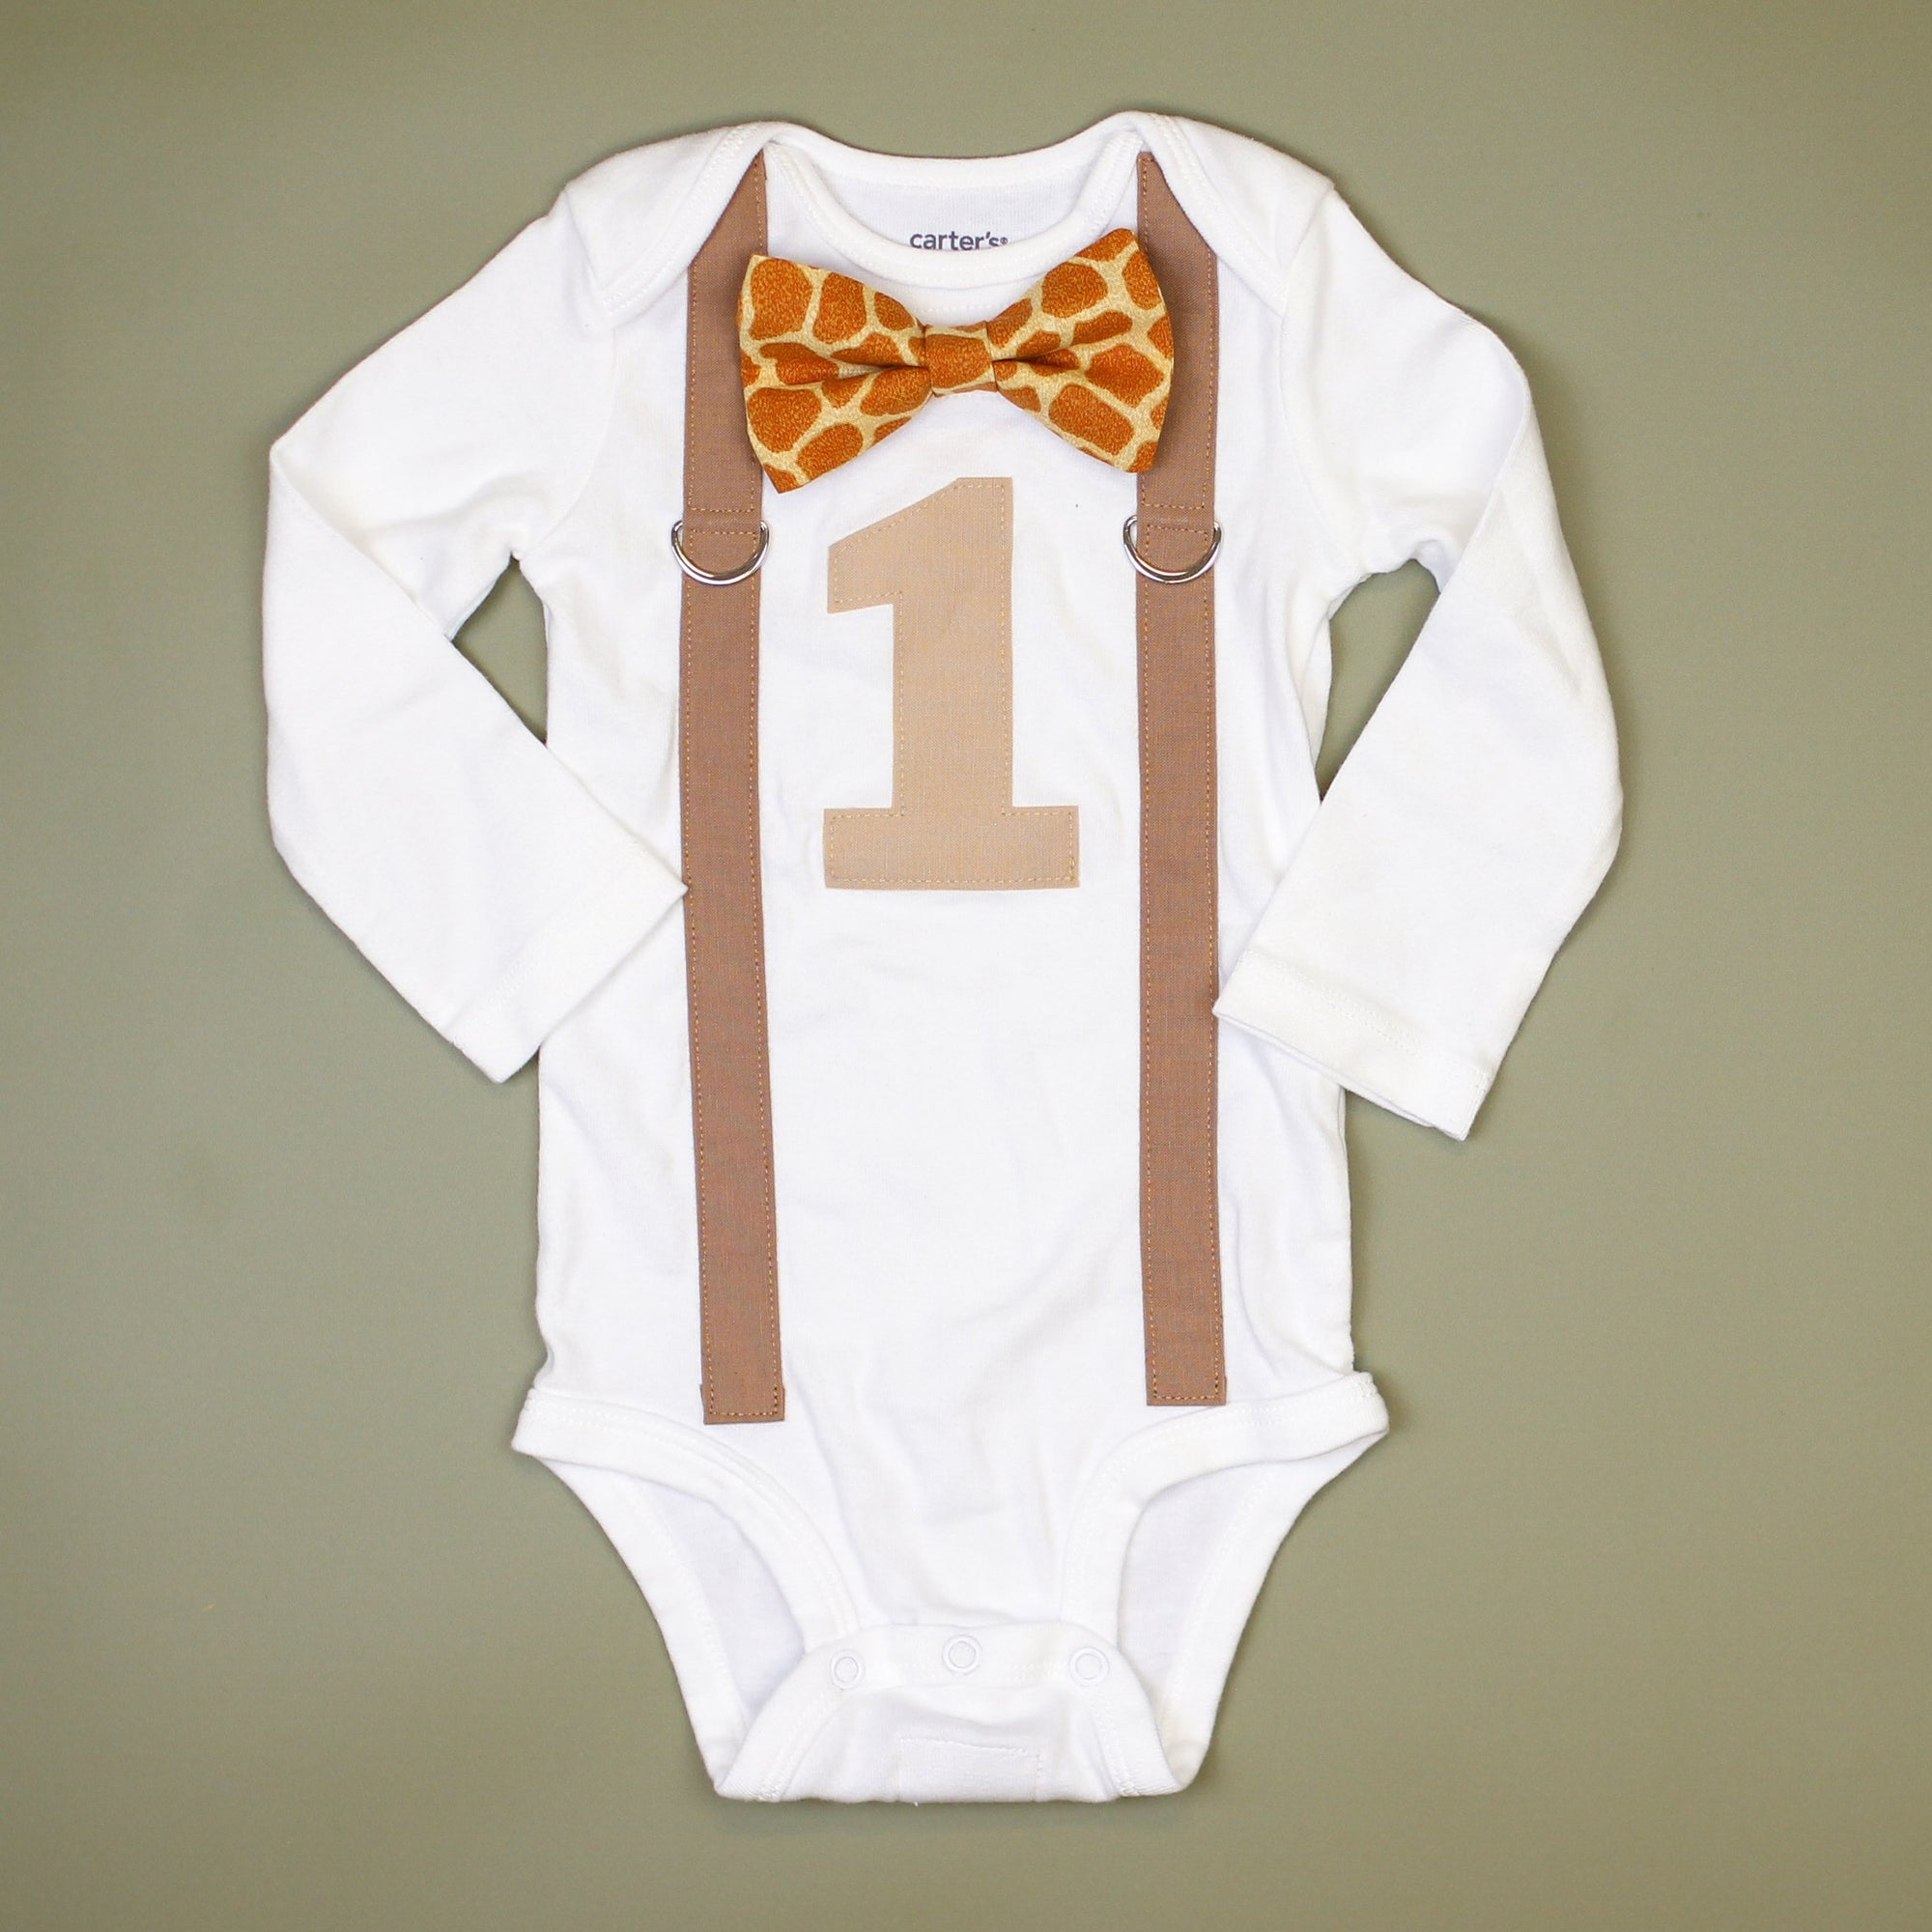 Cuddle Sleep Dream Oh Snap Giraffe 1st Birthday Onesie